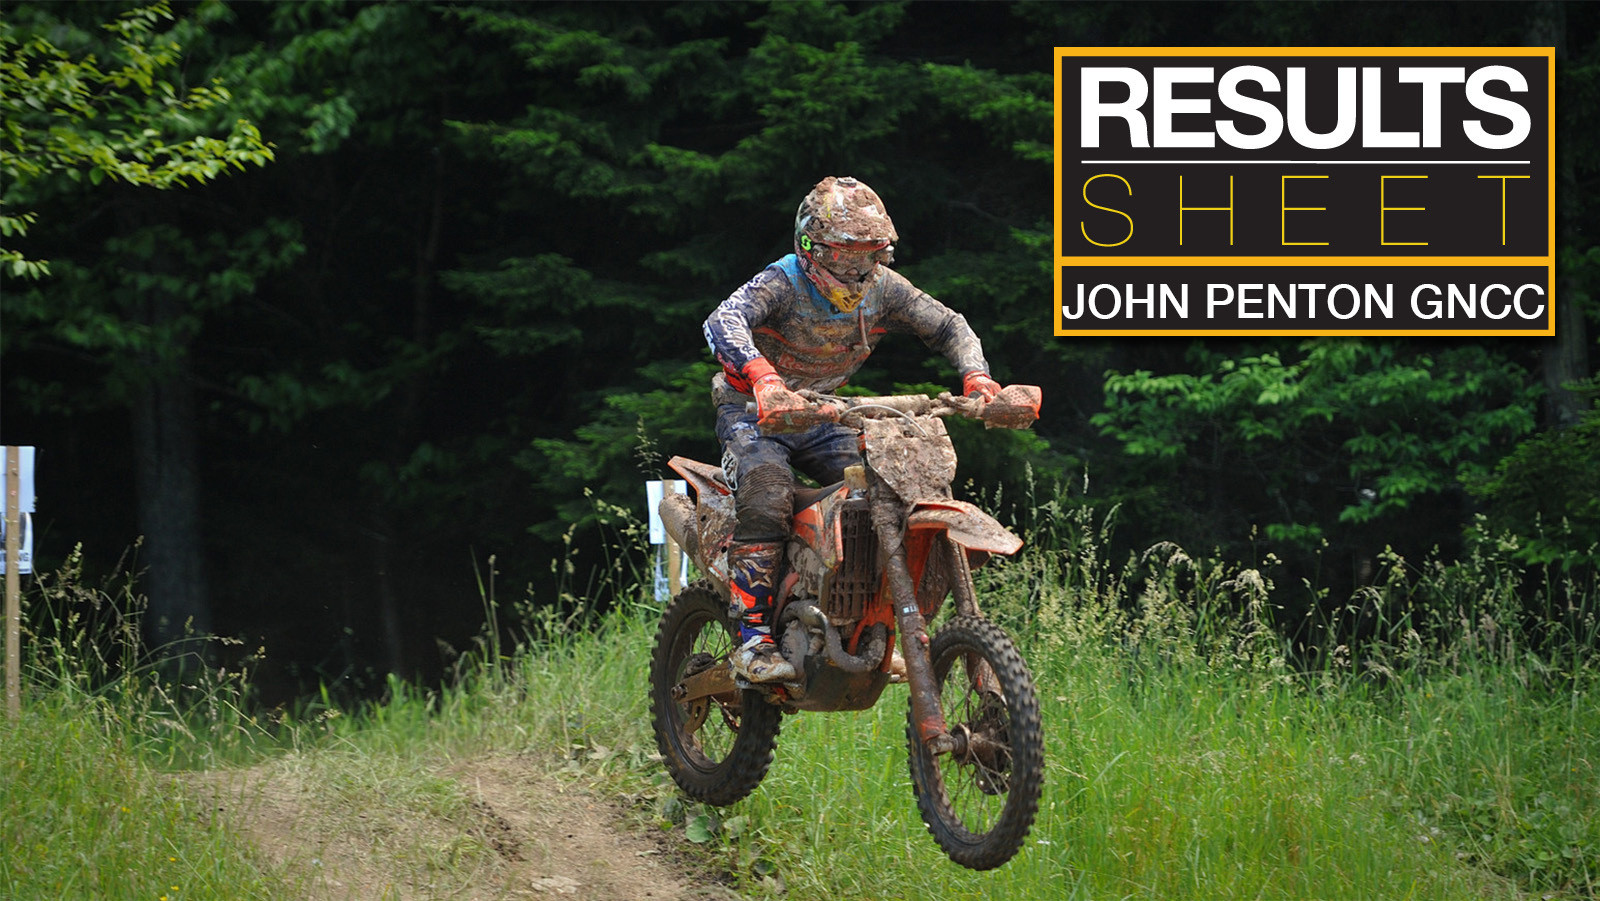 Results Sheet: John Penton GNCC